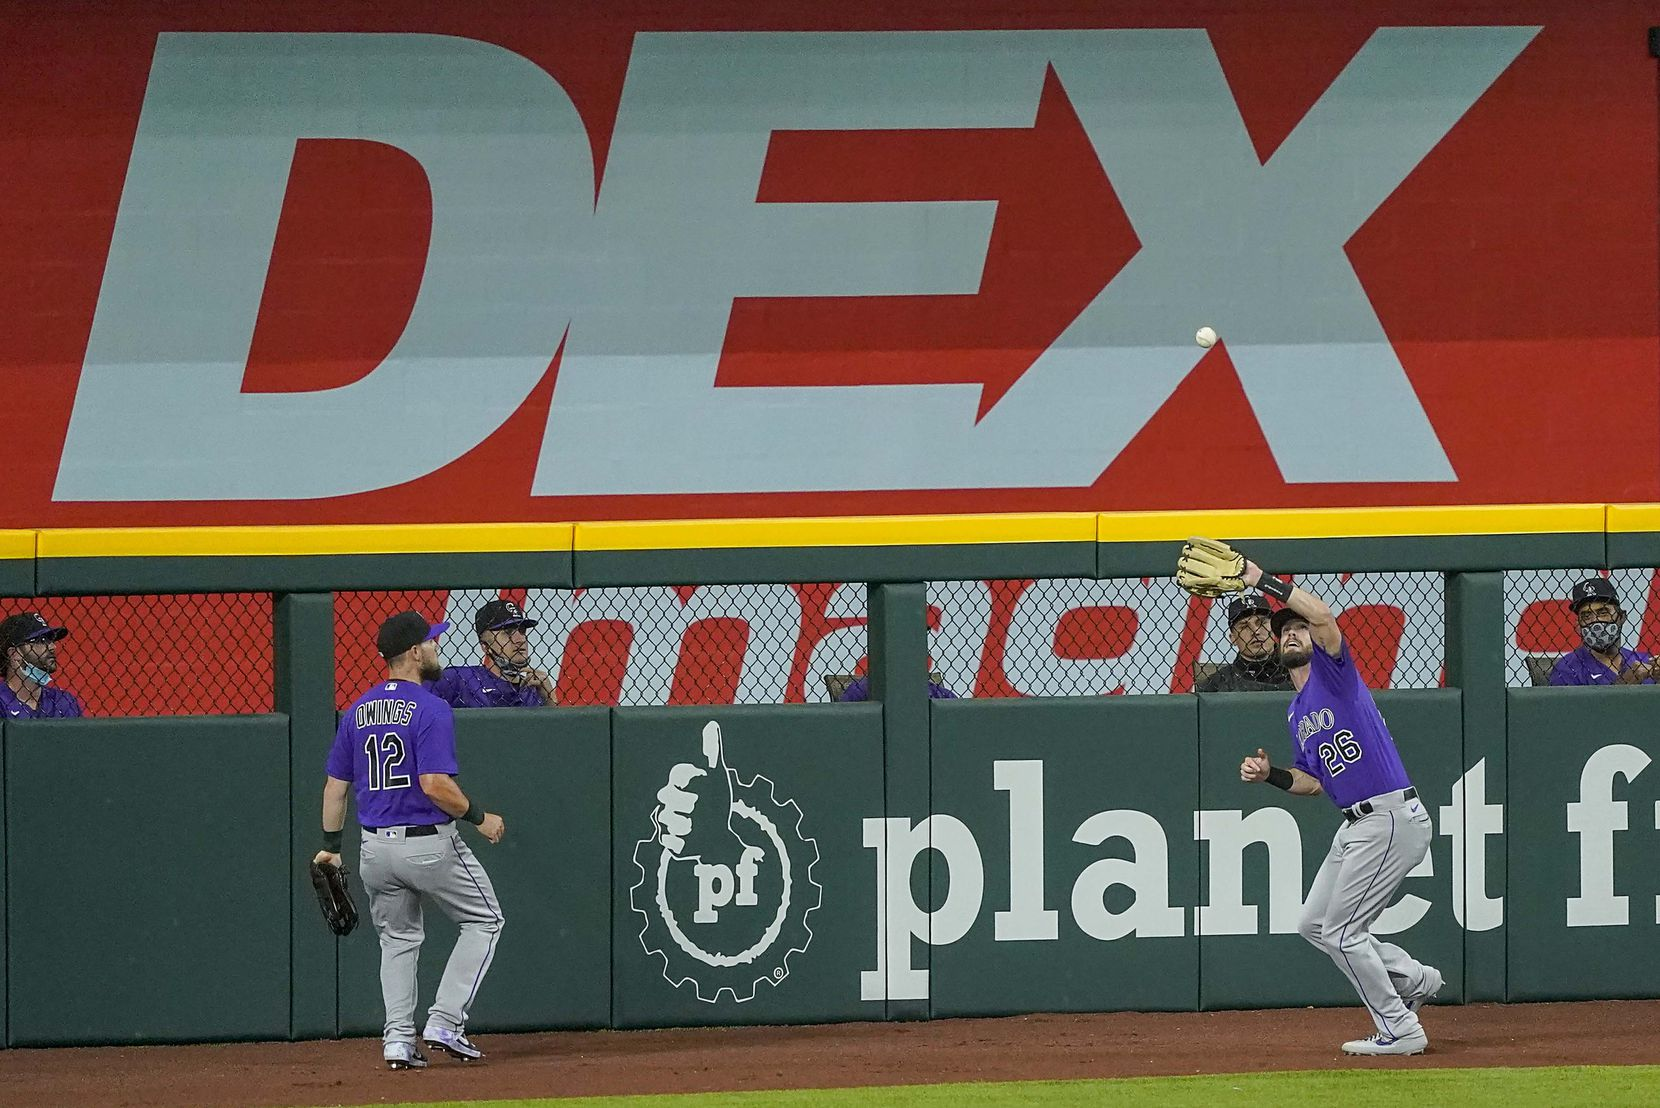 Colorado Rockies left fielder David Dahl makes a catch at the wall on a line drive off the bat of Texas Rangers outfielder Danny Santana during the second inning of an exhibition game at Globe Life Field on Wednesday, July 22, 2020. (Smiley N. Pool/The Dallas Morning News)